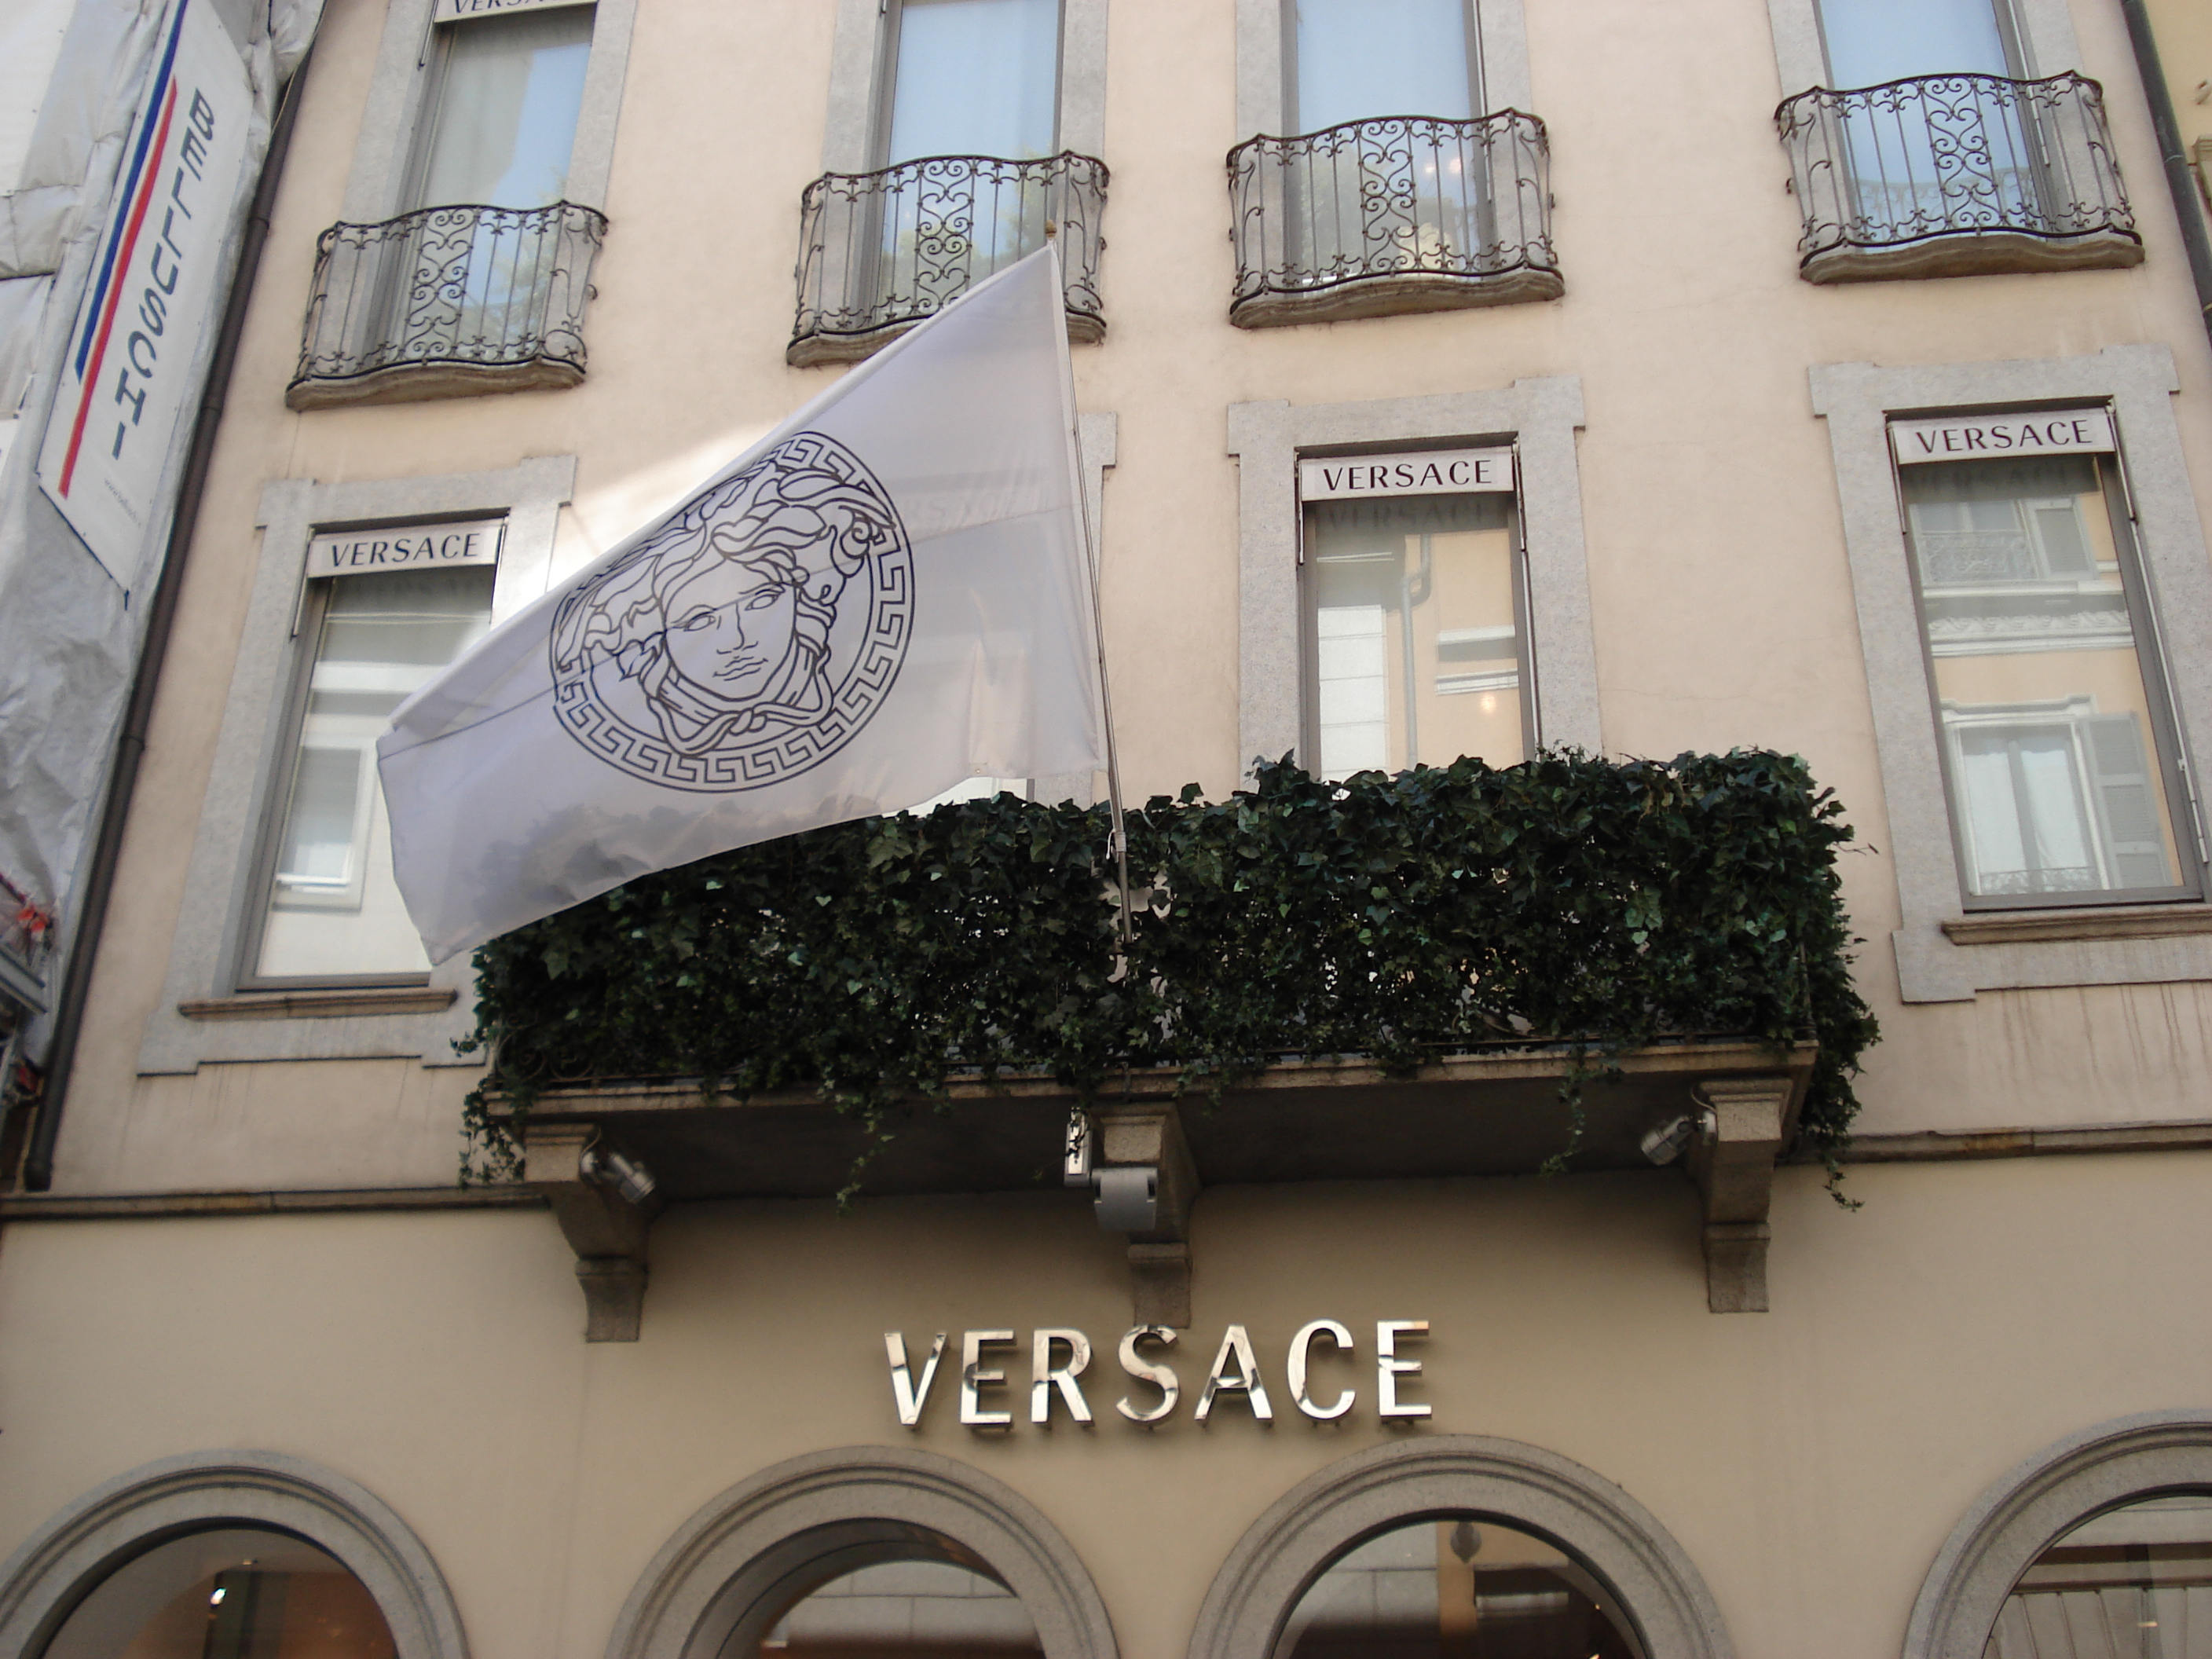 The Versace boutique in Milan, Italy